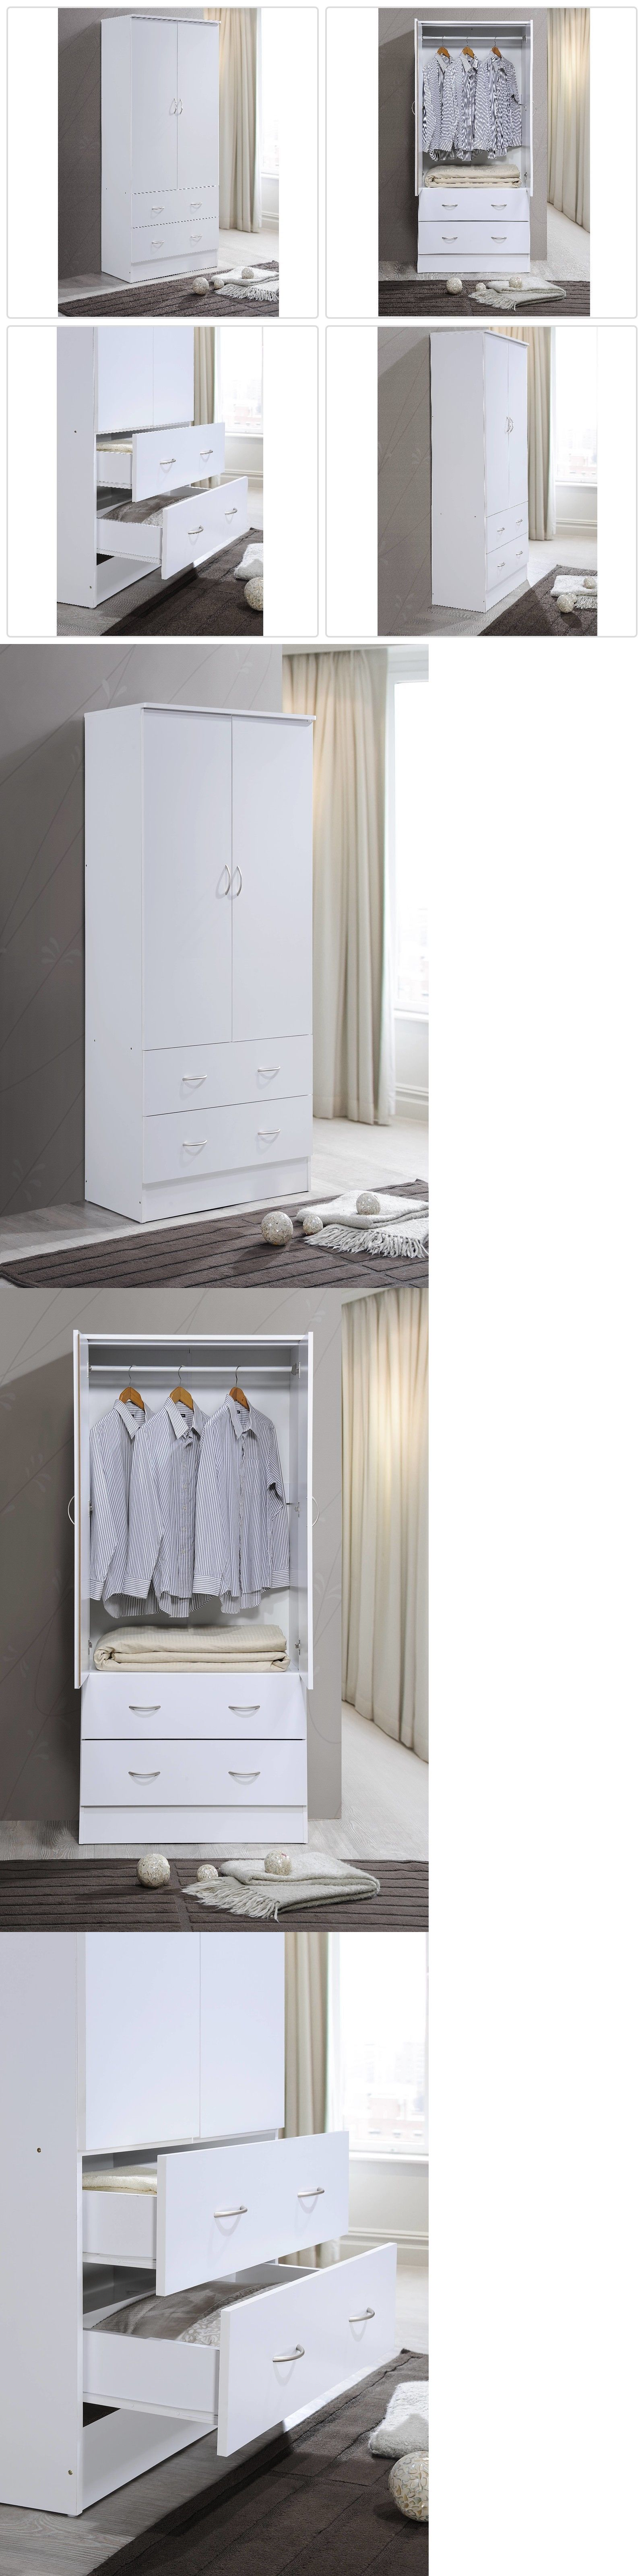 Armoires And Wardrobes 103430 Modern White 2 Door Wardrobe Clothes Armoire Storage Drawers Bedroom Furniture It Now Only 139 96 On Ebay